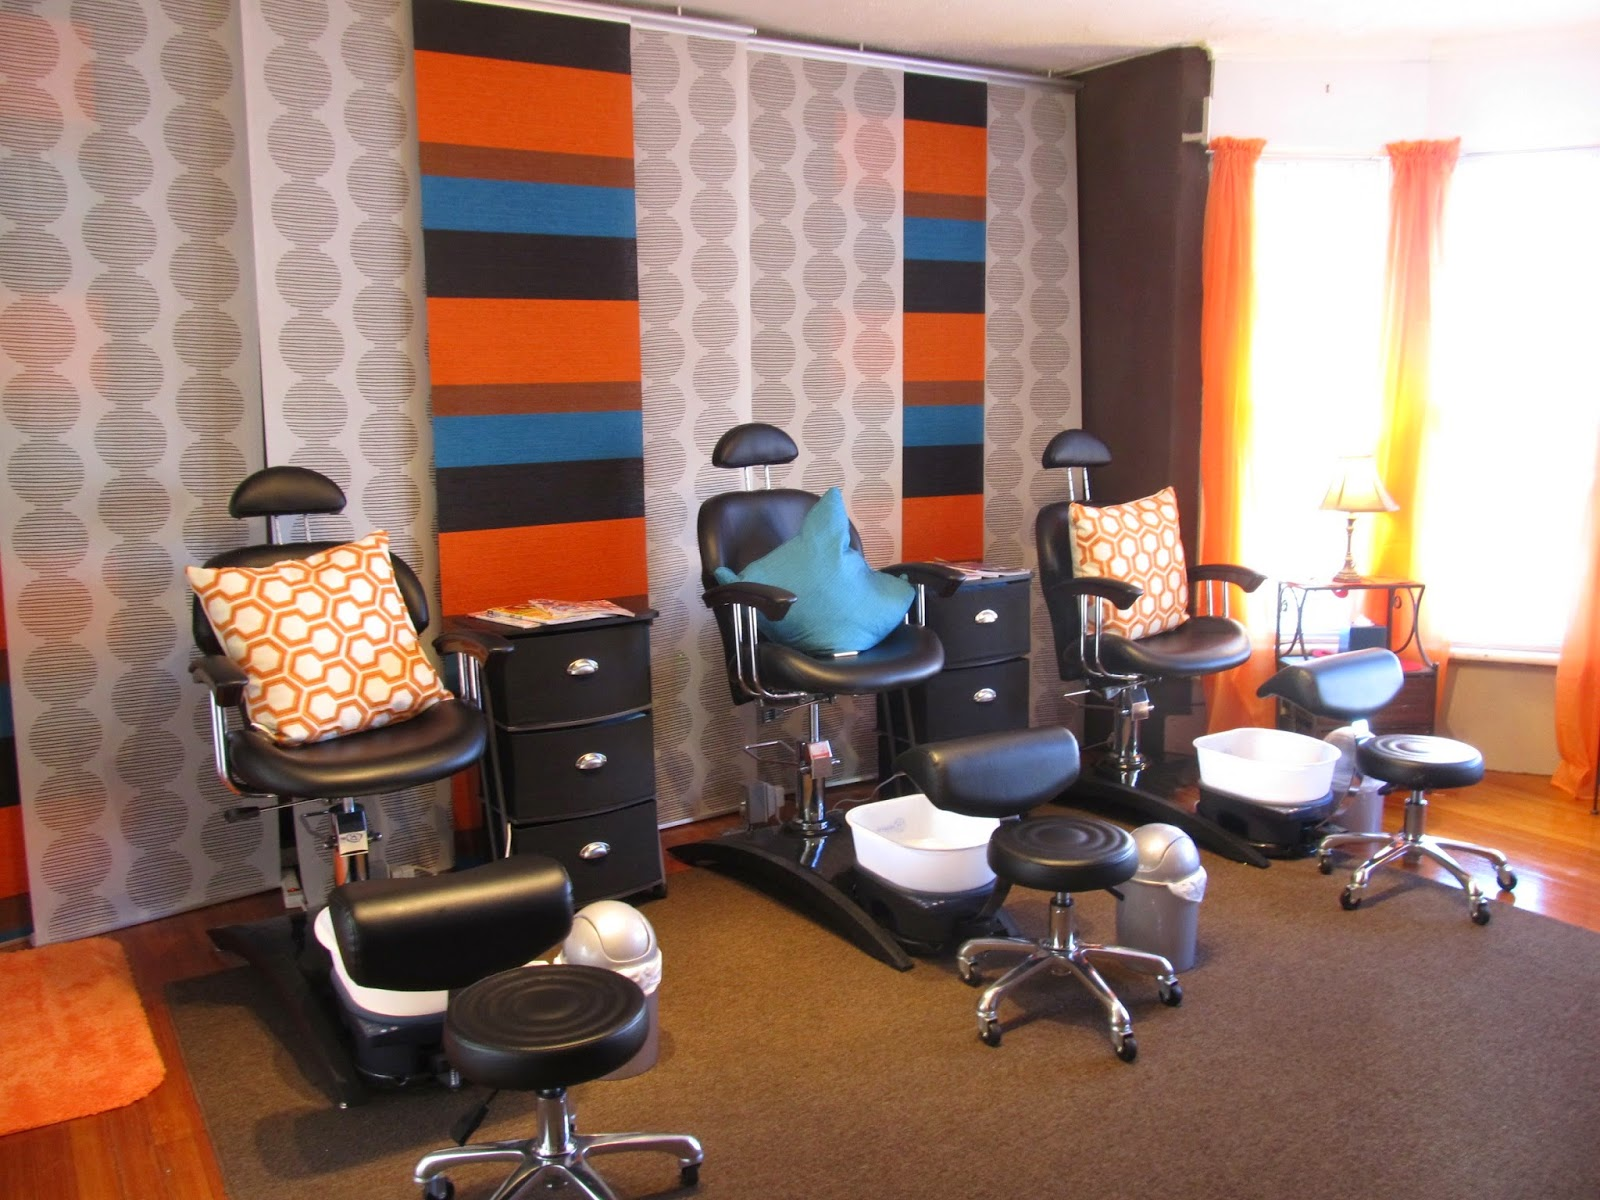 Belava Pedicure Chair Bedford Mass What 39s New In Retail October 2014